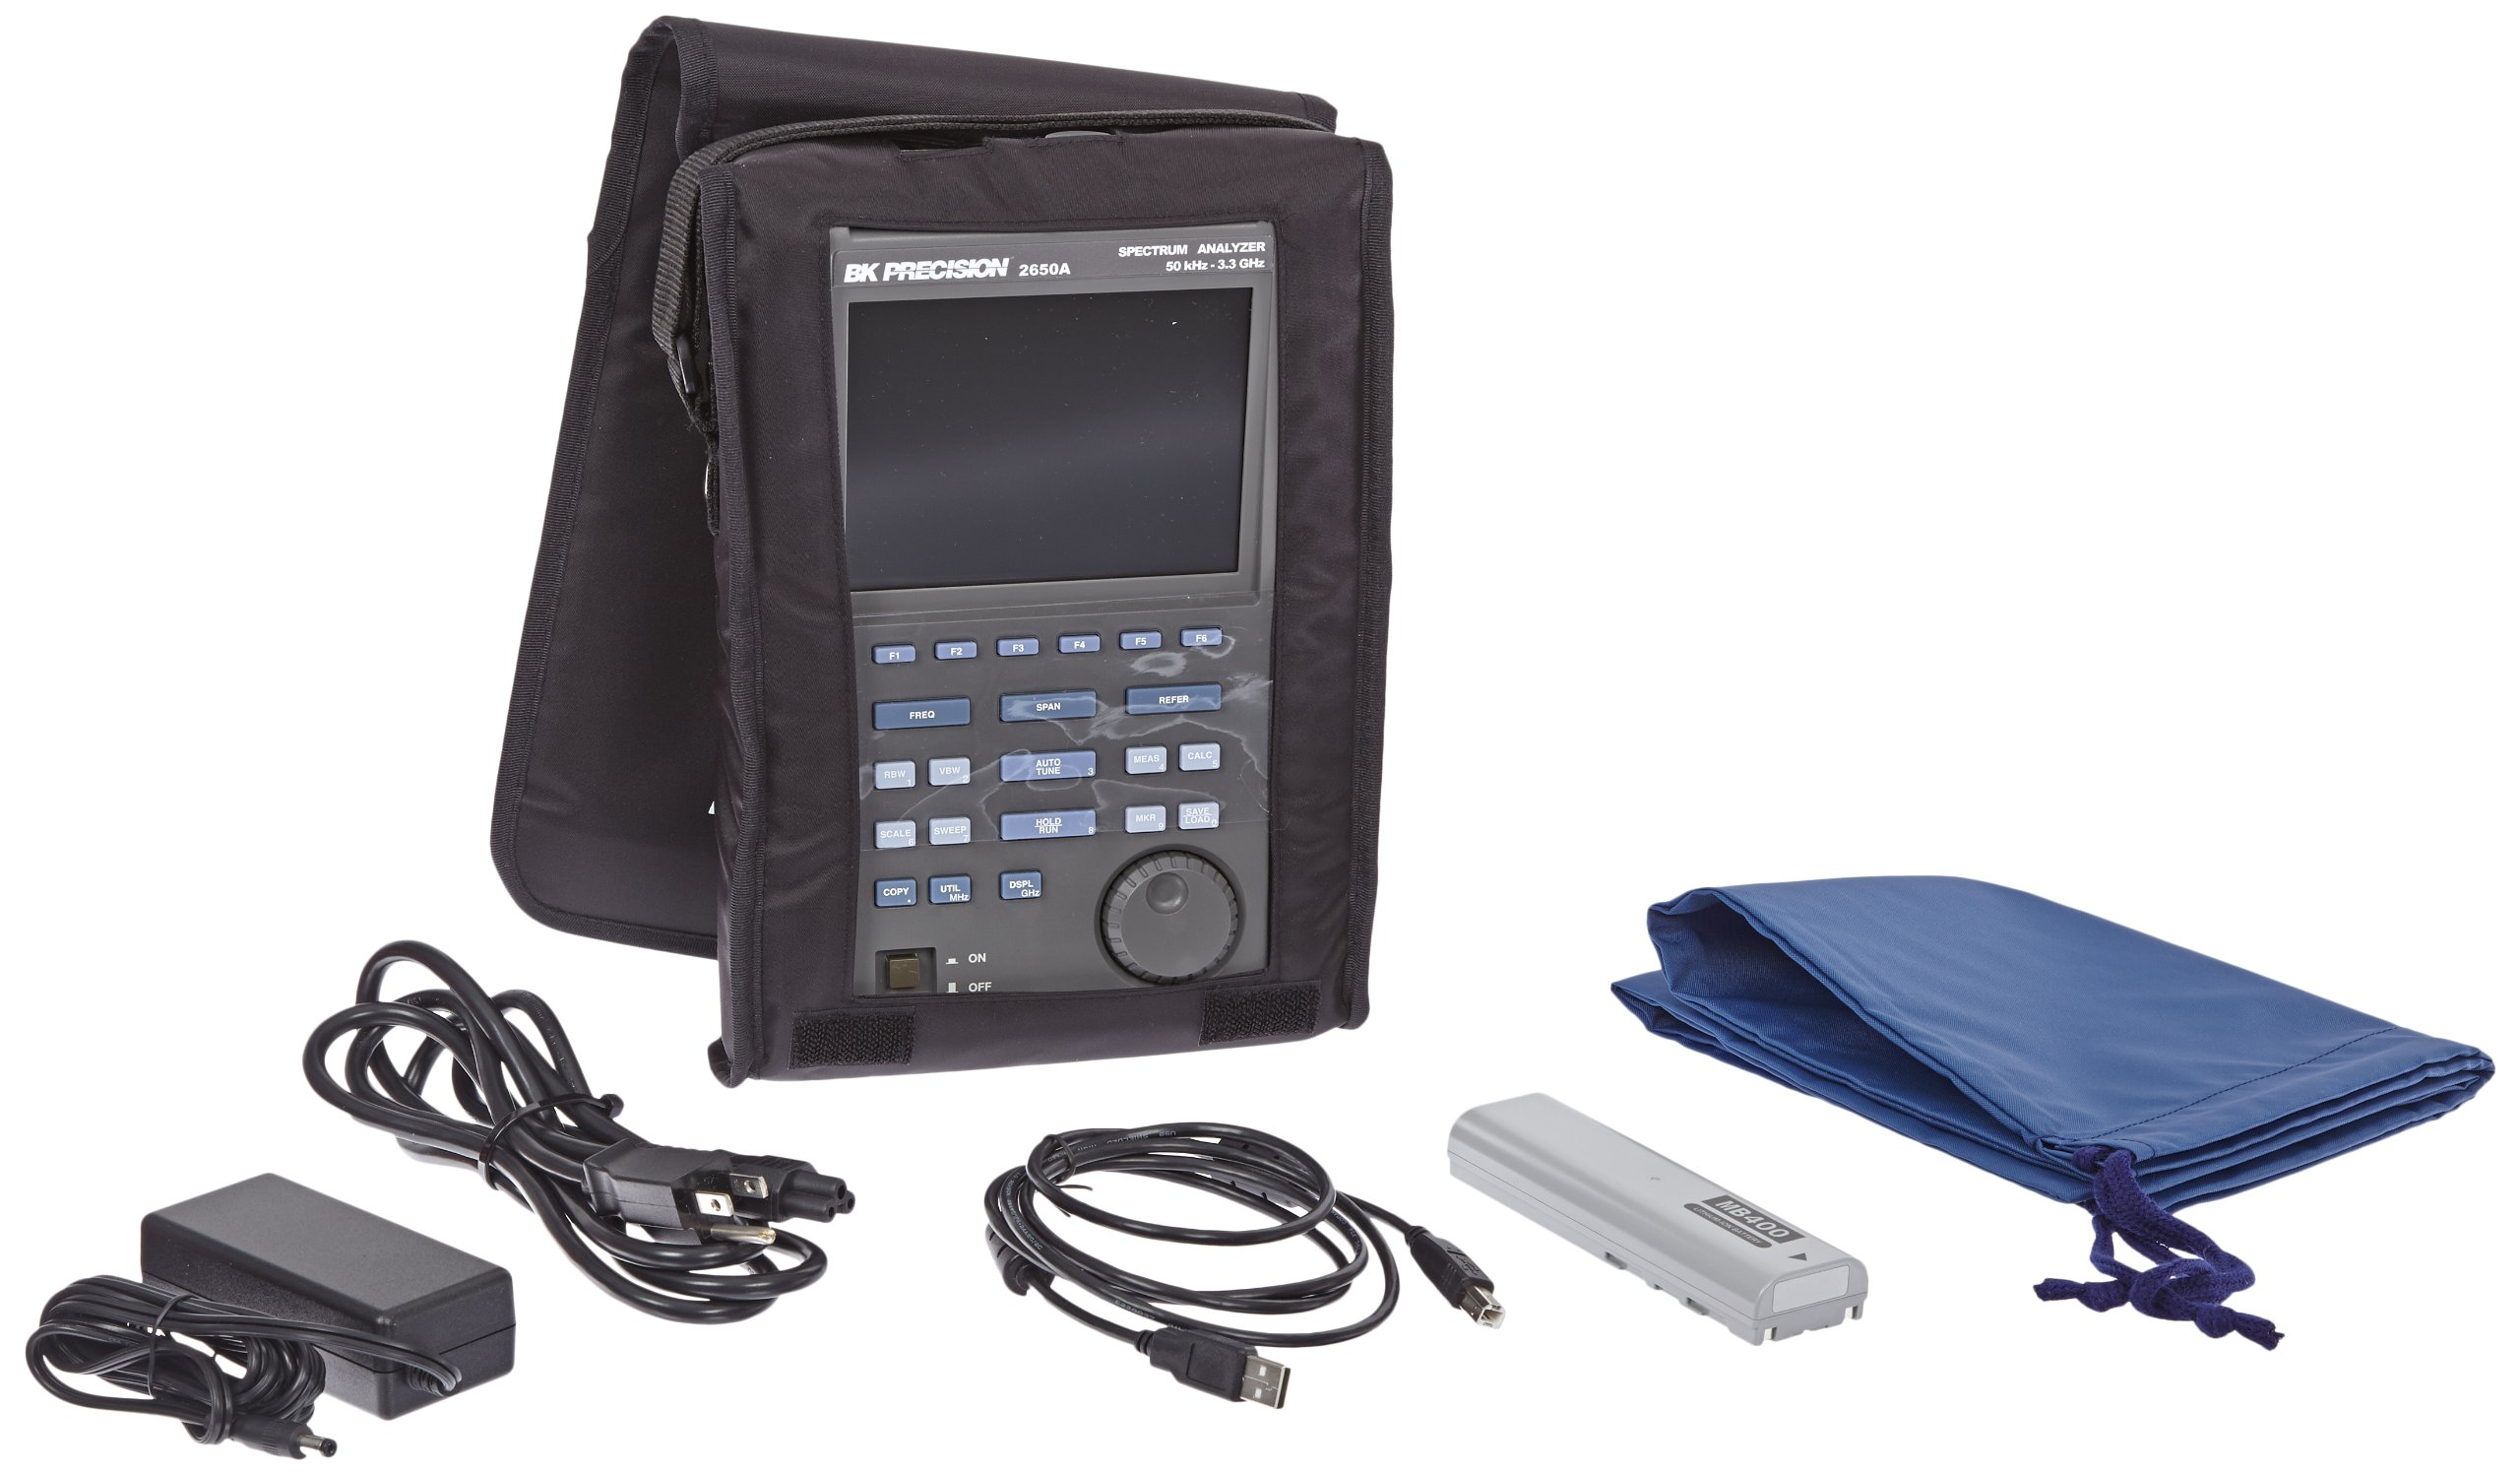 B&K Precision 2650A Handheld Spectrum Analyzer, 50 kHz - 3.3 GHz Frequency